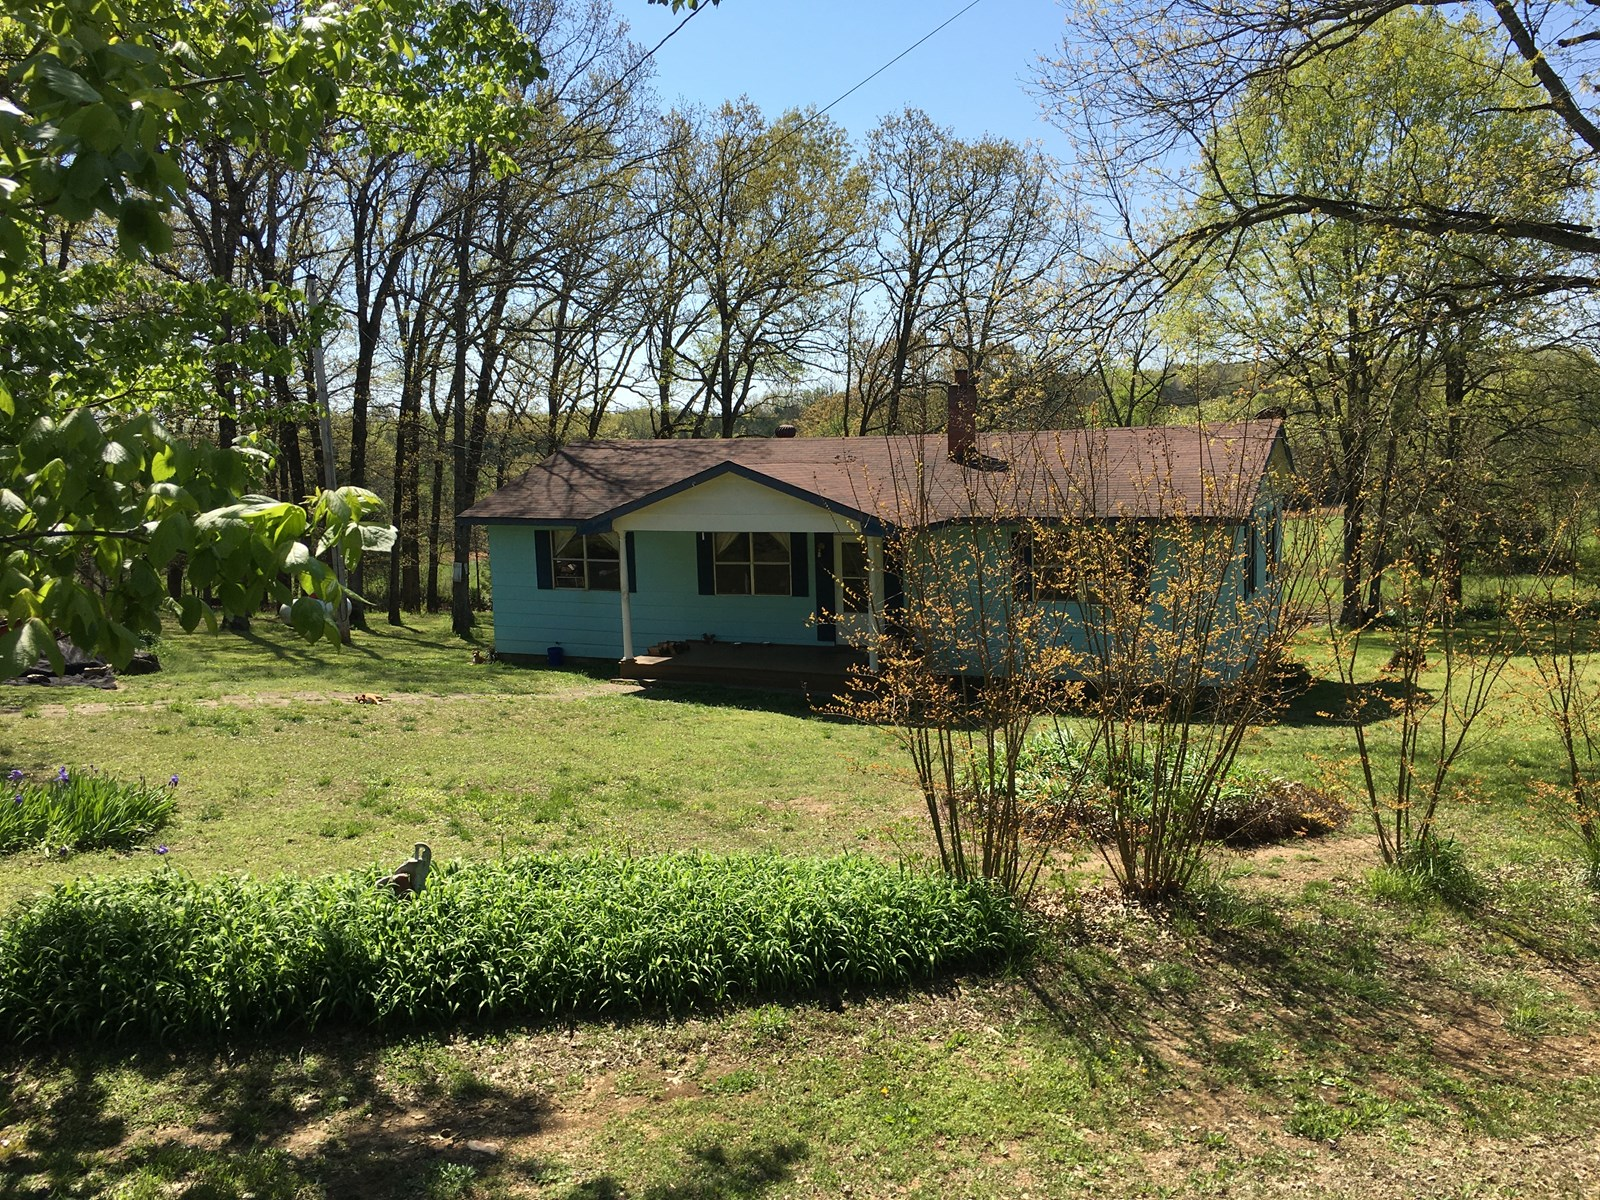 Country Home in Arkansas Ozark foothills, 3 beautiful acres